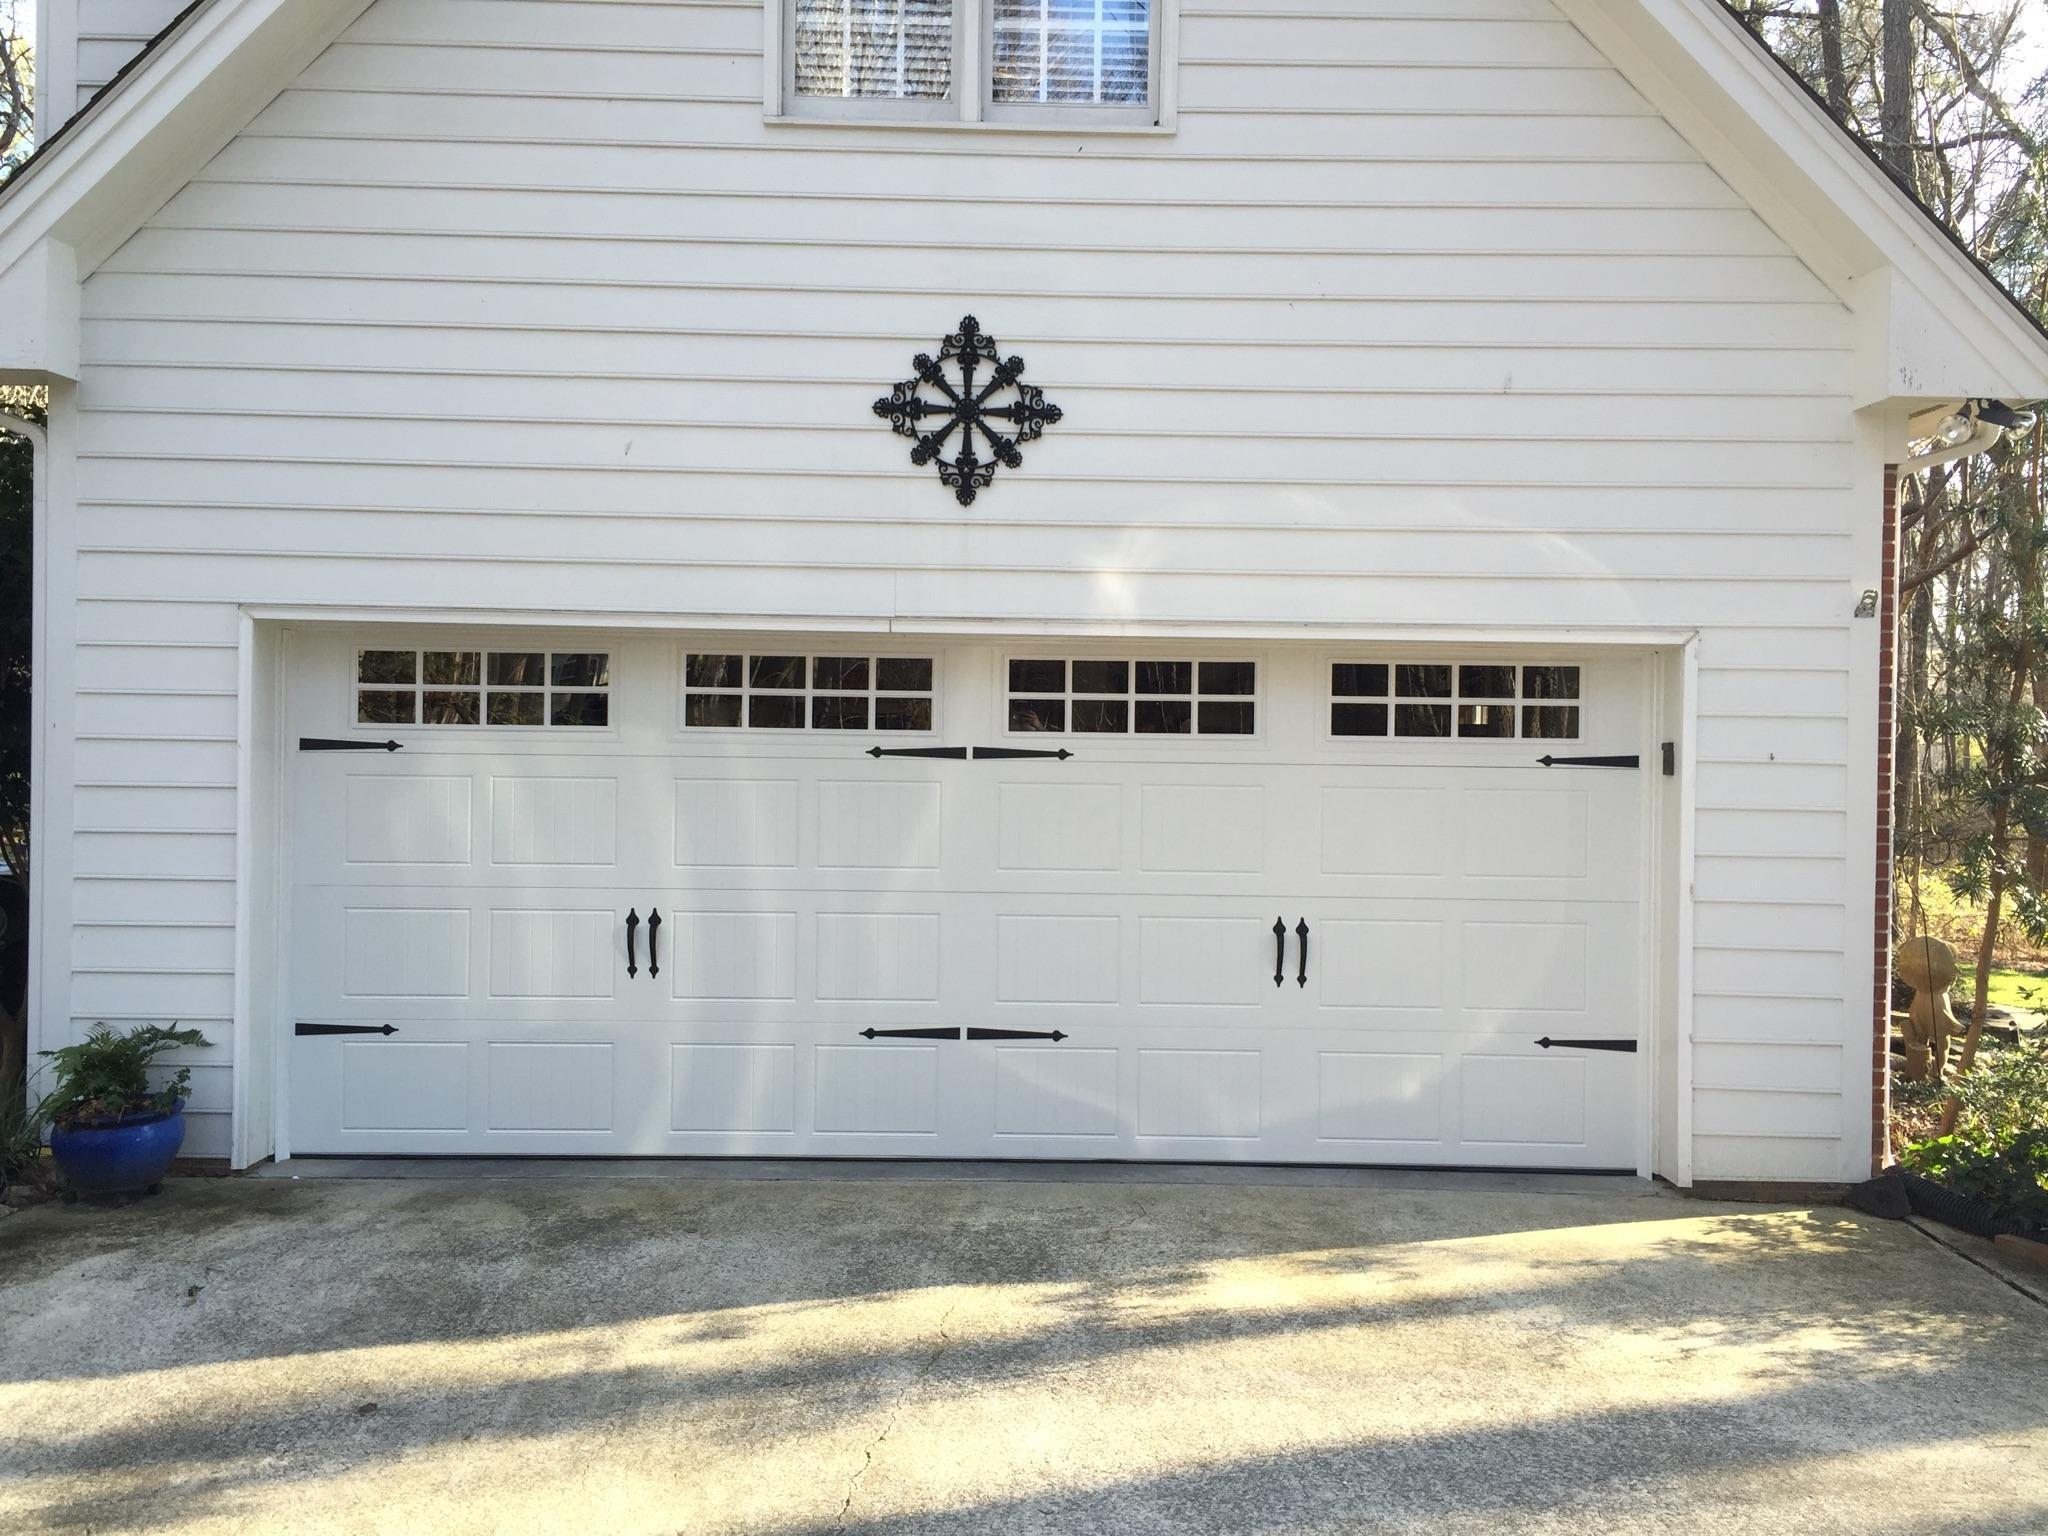 1536 #5E4C3C All American Overhead Garage Door Inc. In Wendell NC 27591  image Overhead Garage Doors Residential Reviews 37132048